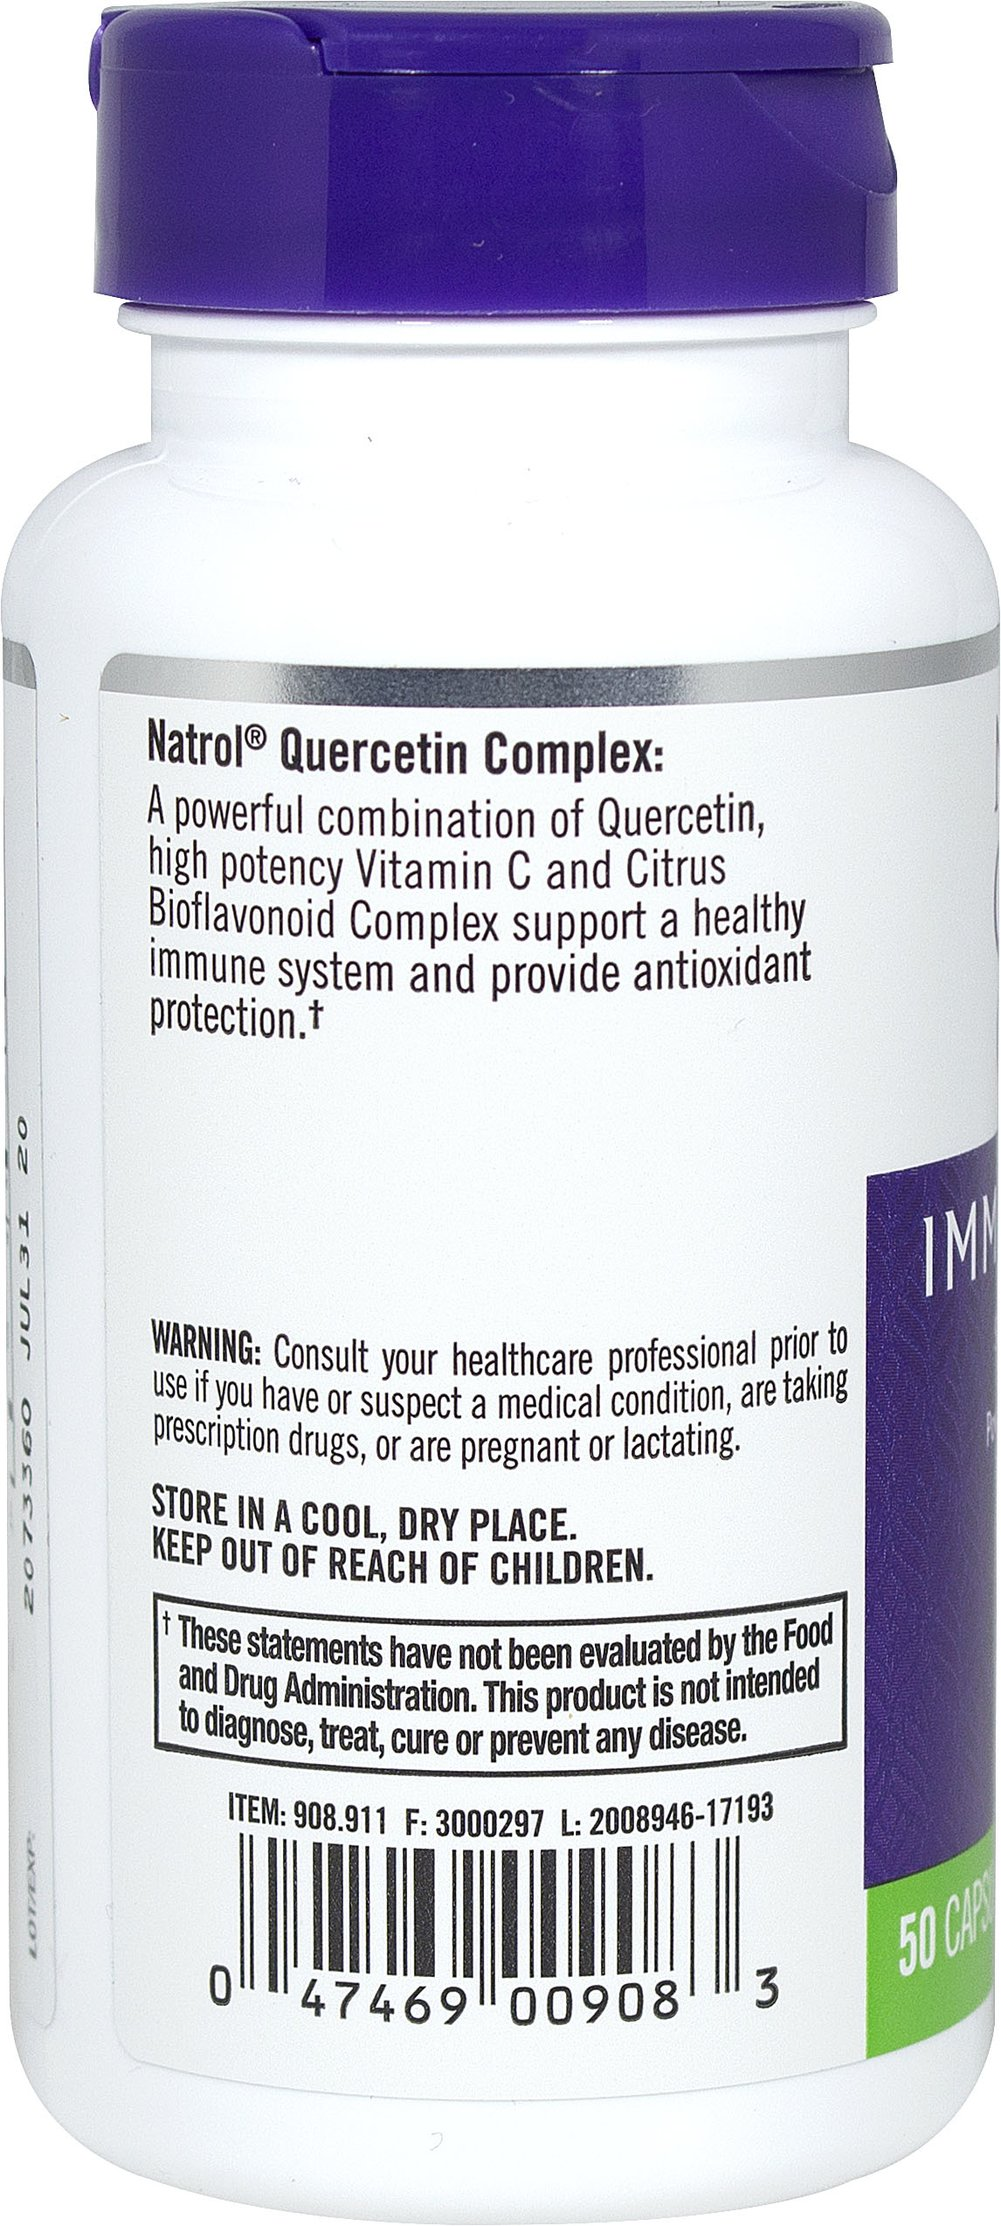 Quercetin 250 mg Thumbnail Alternate Bottle View